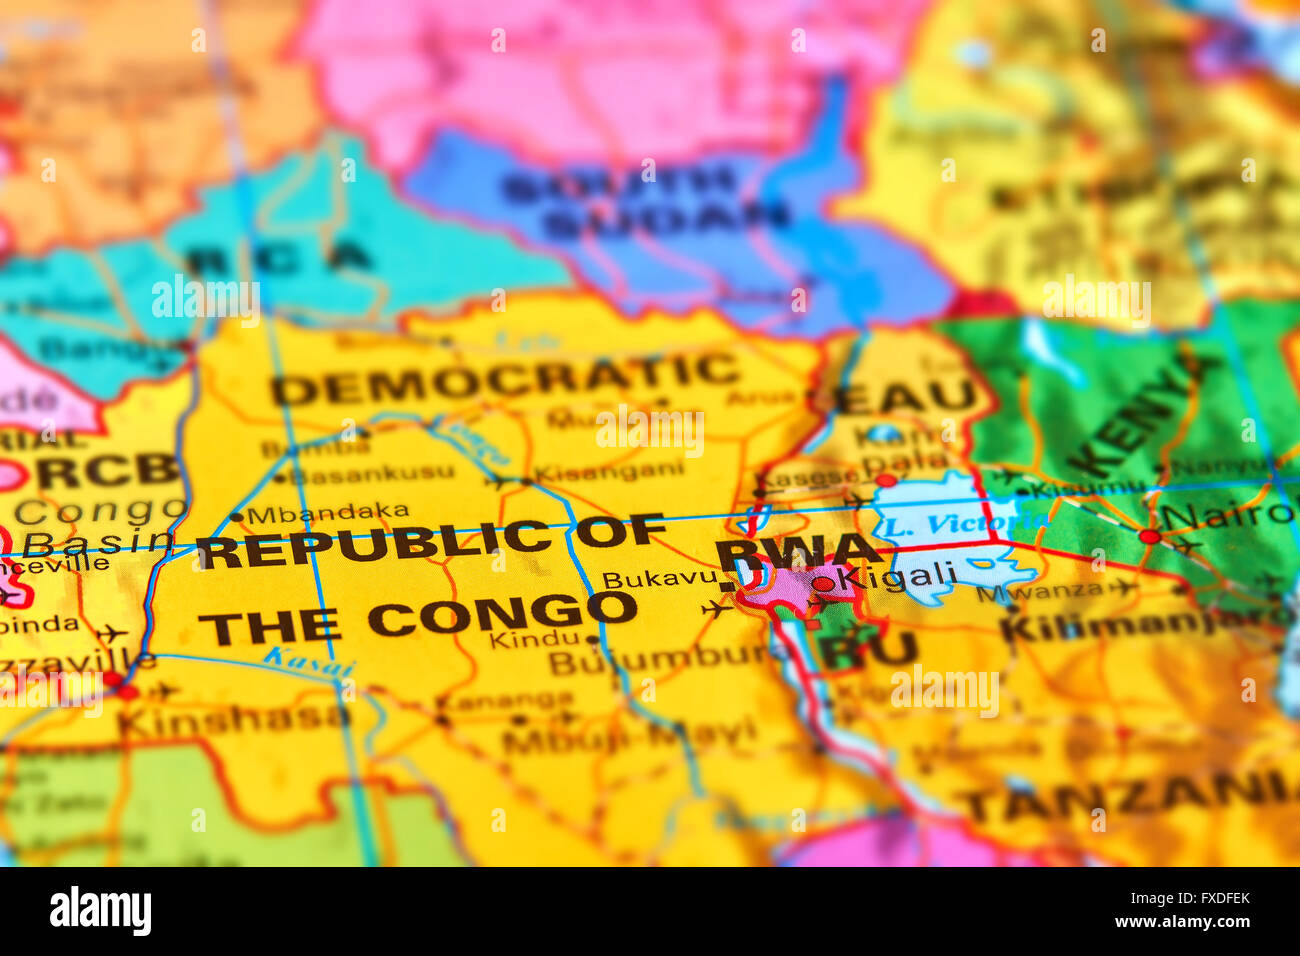 Democratic Republic Of Congo In Africa On The World Map Stock Photo